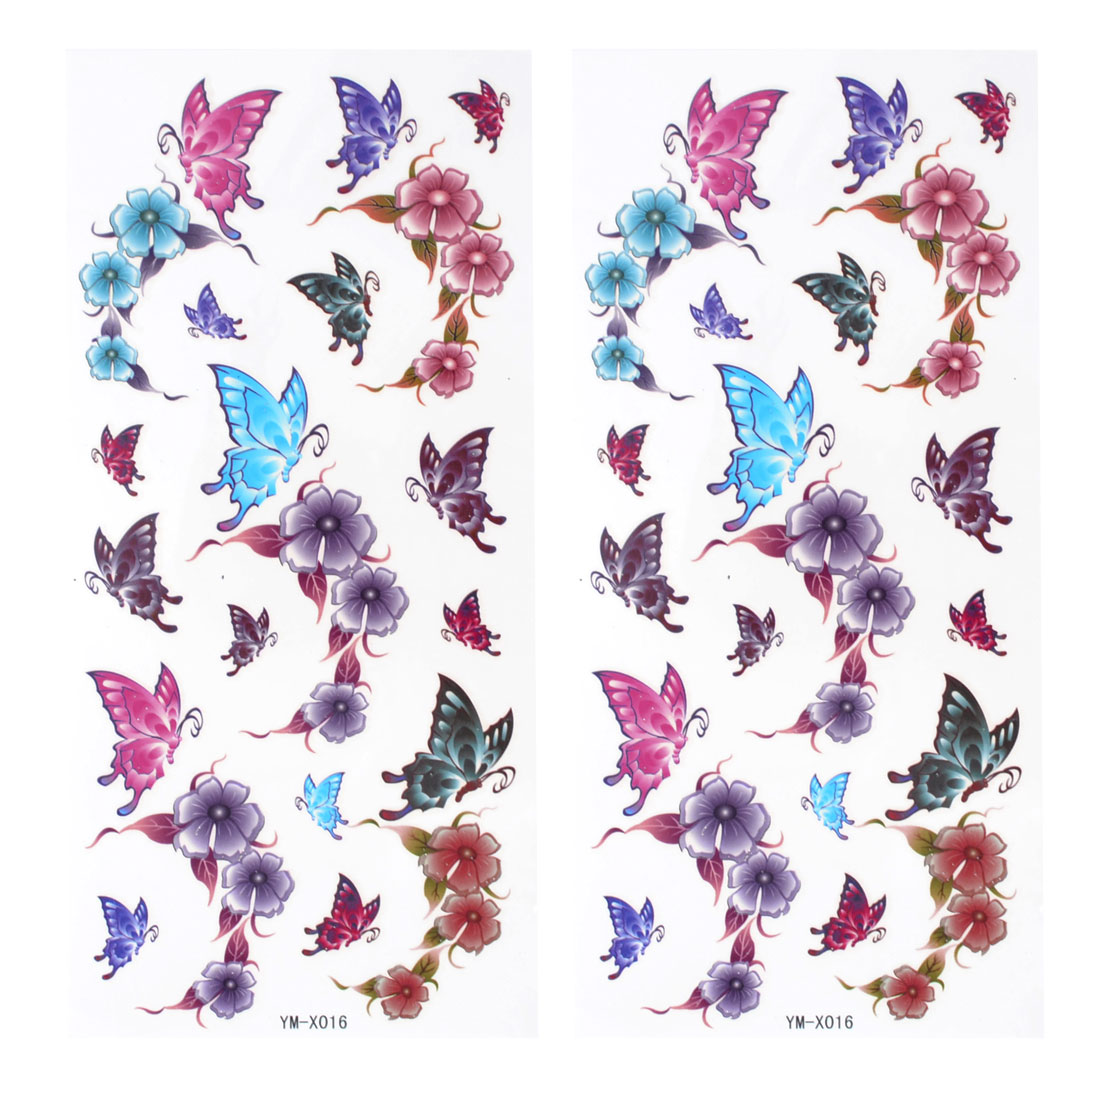 Unique Bargains Colorful Butterfly Flwer Pattern Temporary Tattoo Transfer Sticker 2 Pcs